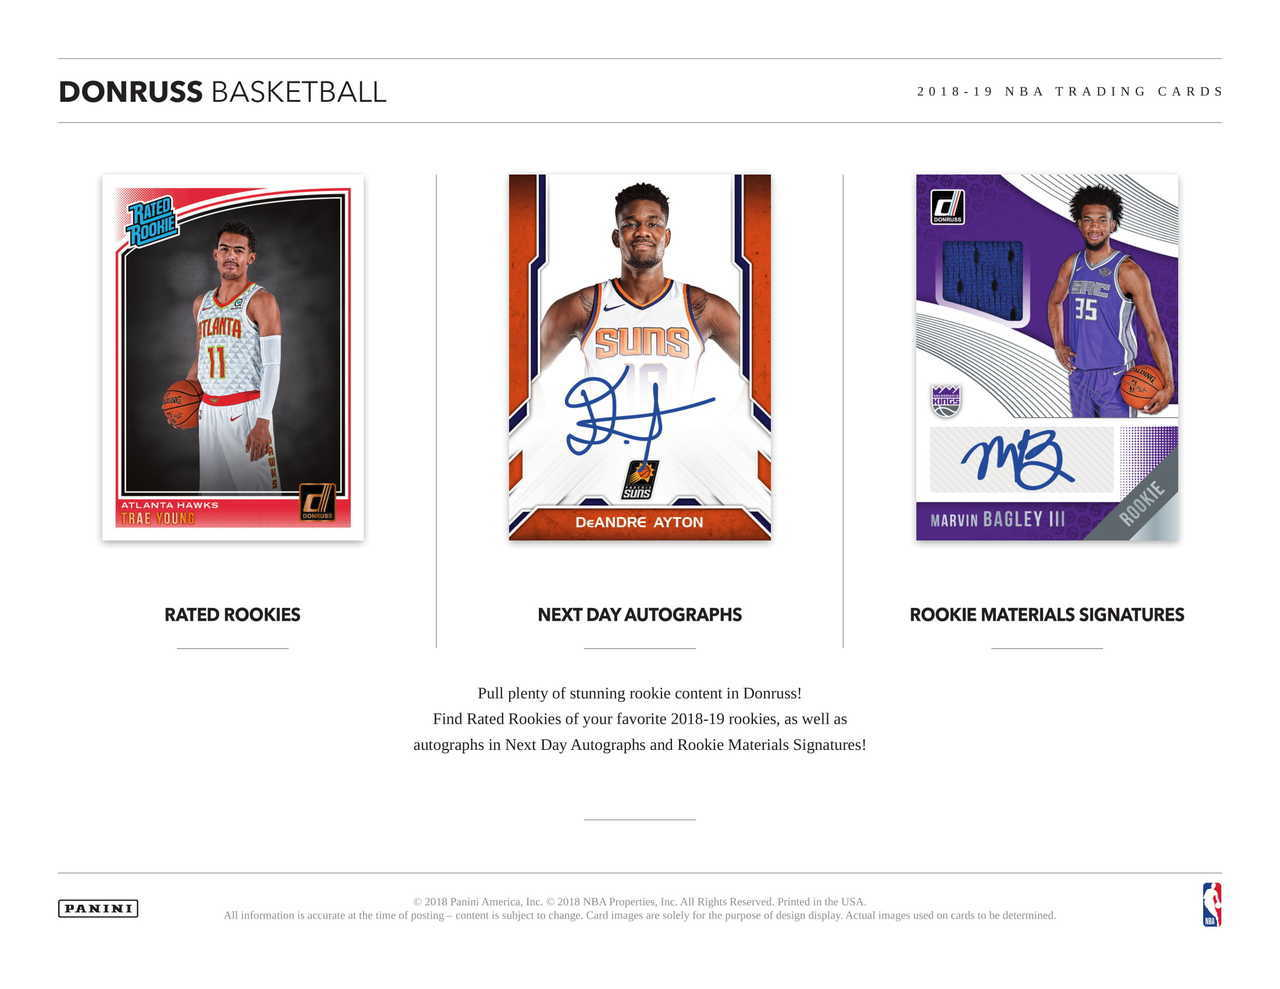 201819_Panini_Donruss_Basketball_Hobby_Box__2.jpg